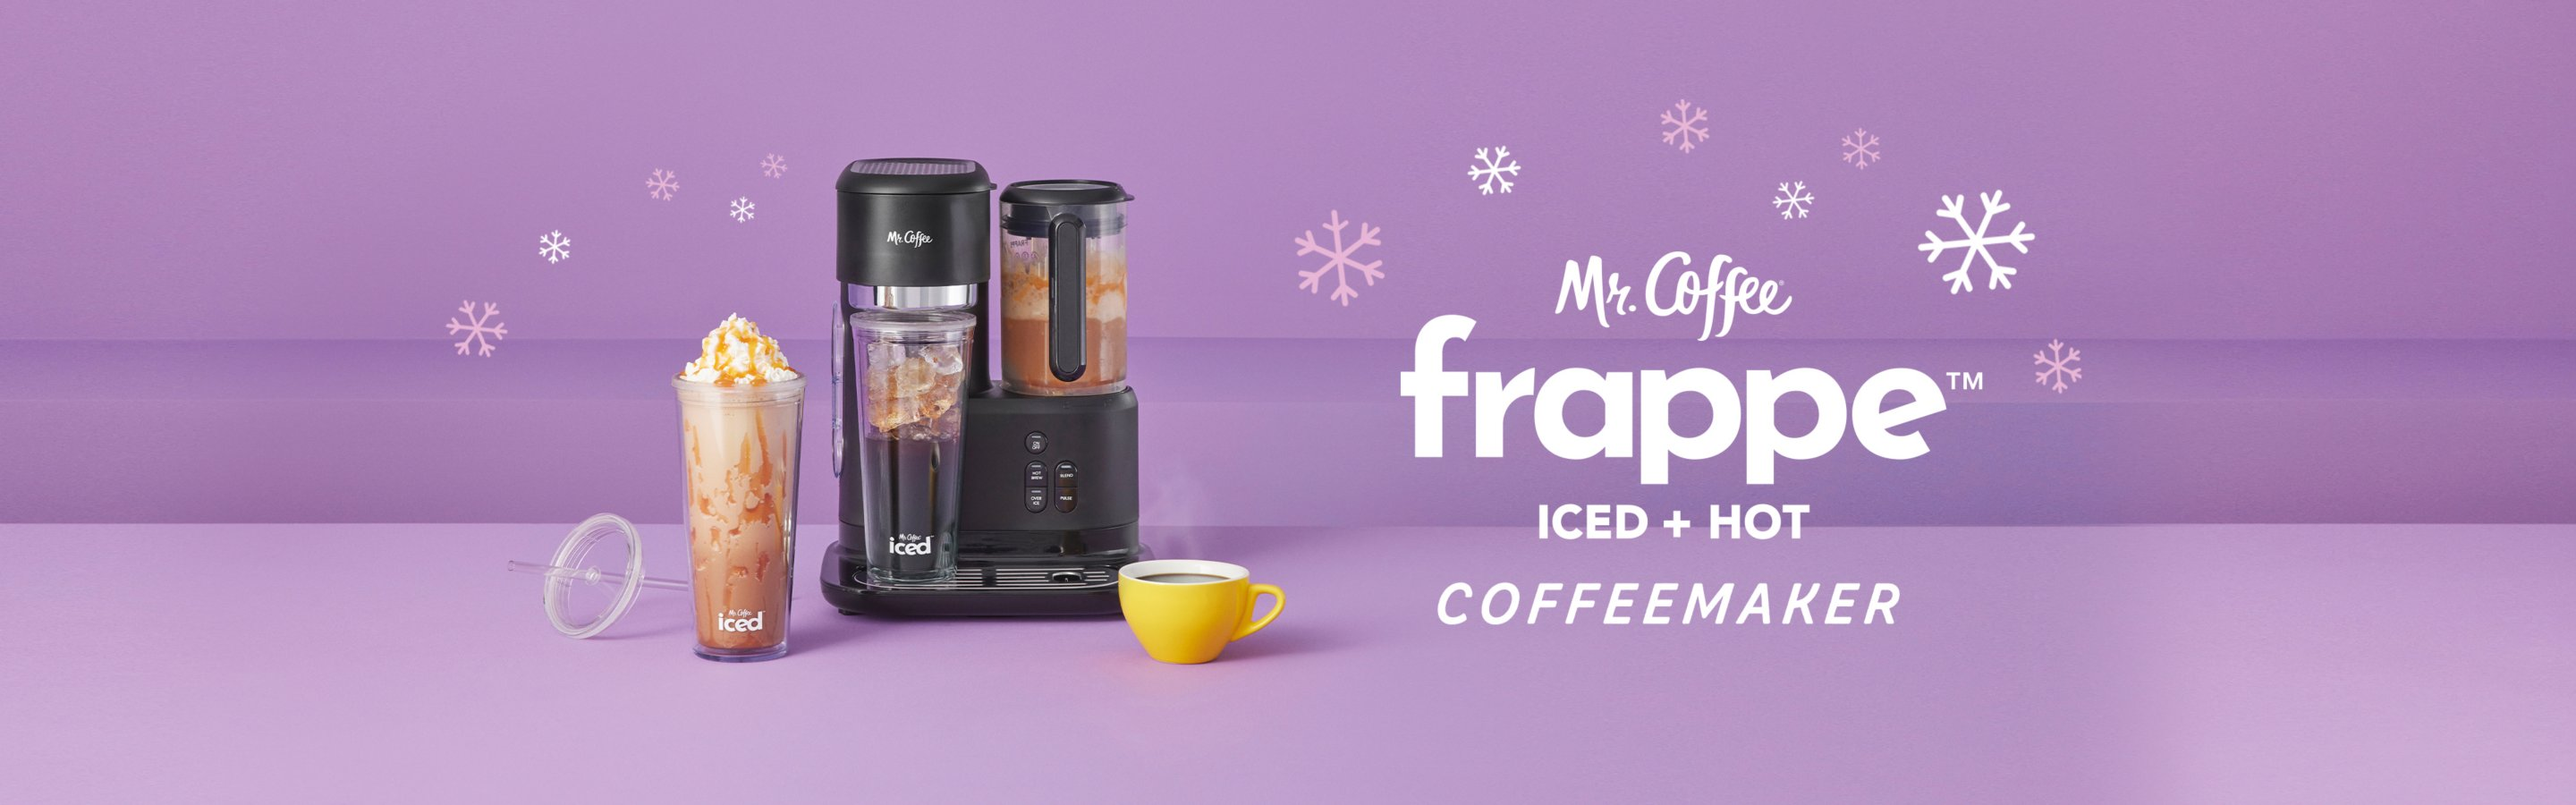 frappe iced and hot coffeemaker